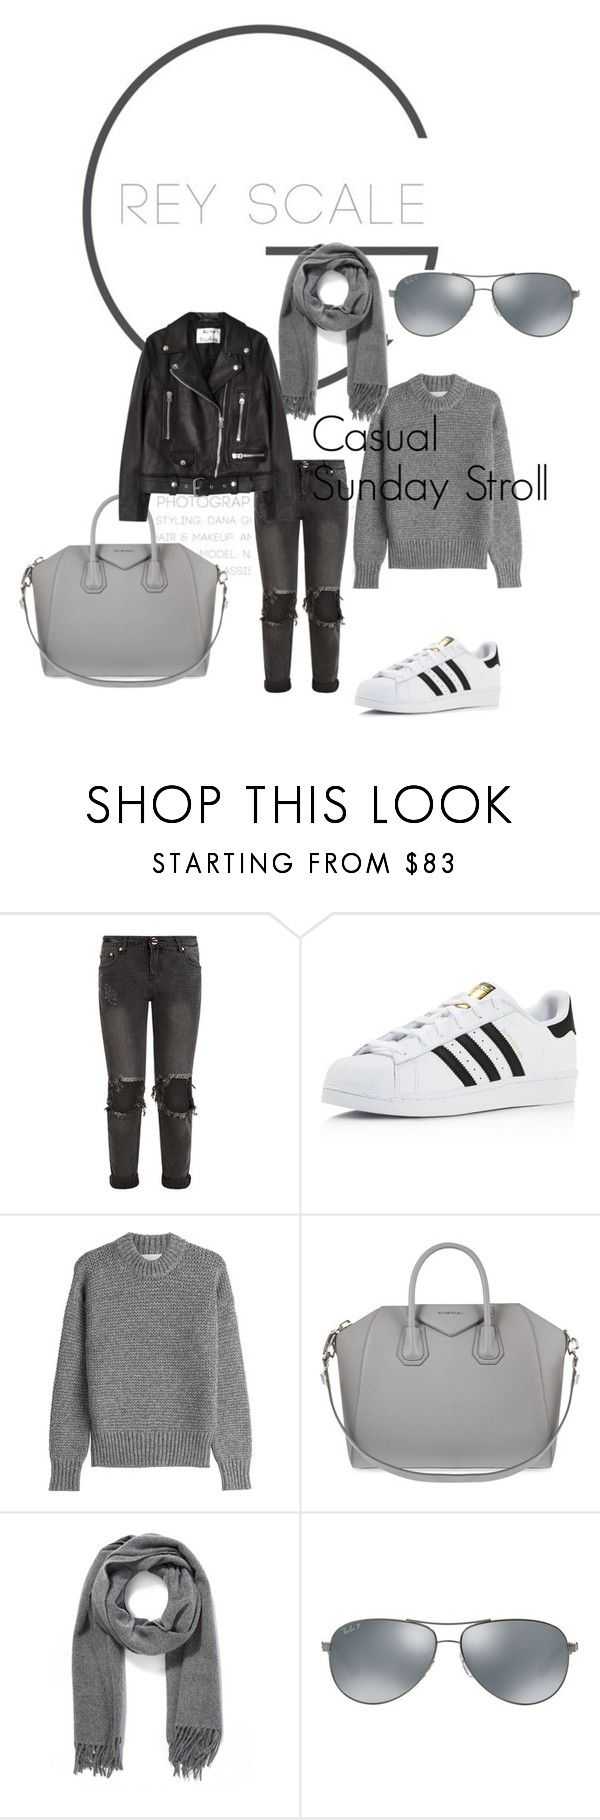 """""""Casual"""" by gunhild on Polyvore featuring OneTeaspoon, adidas, DKNY, Givenchy, Acne Studios and Ray-Ban"""